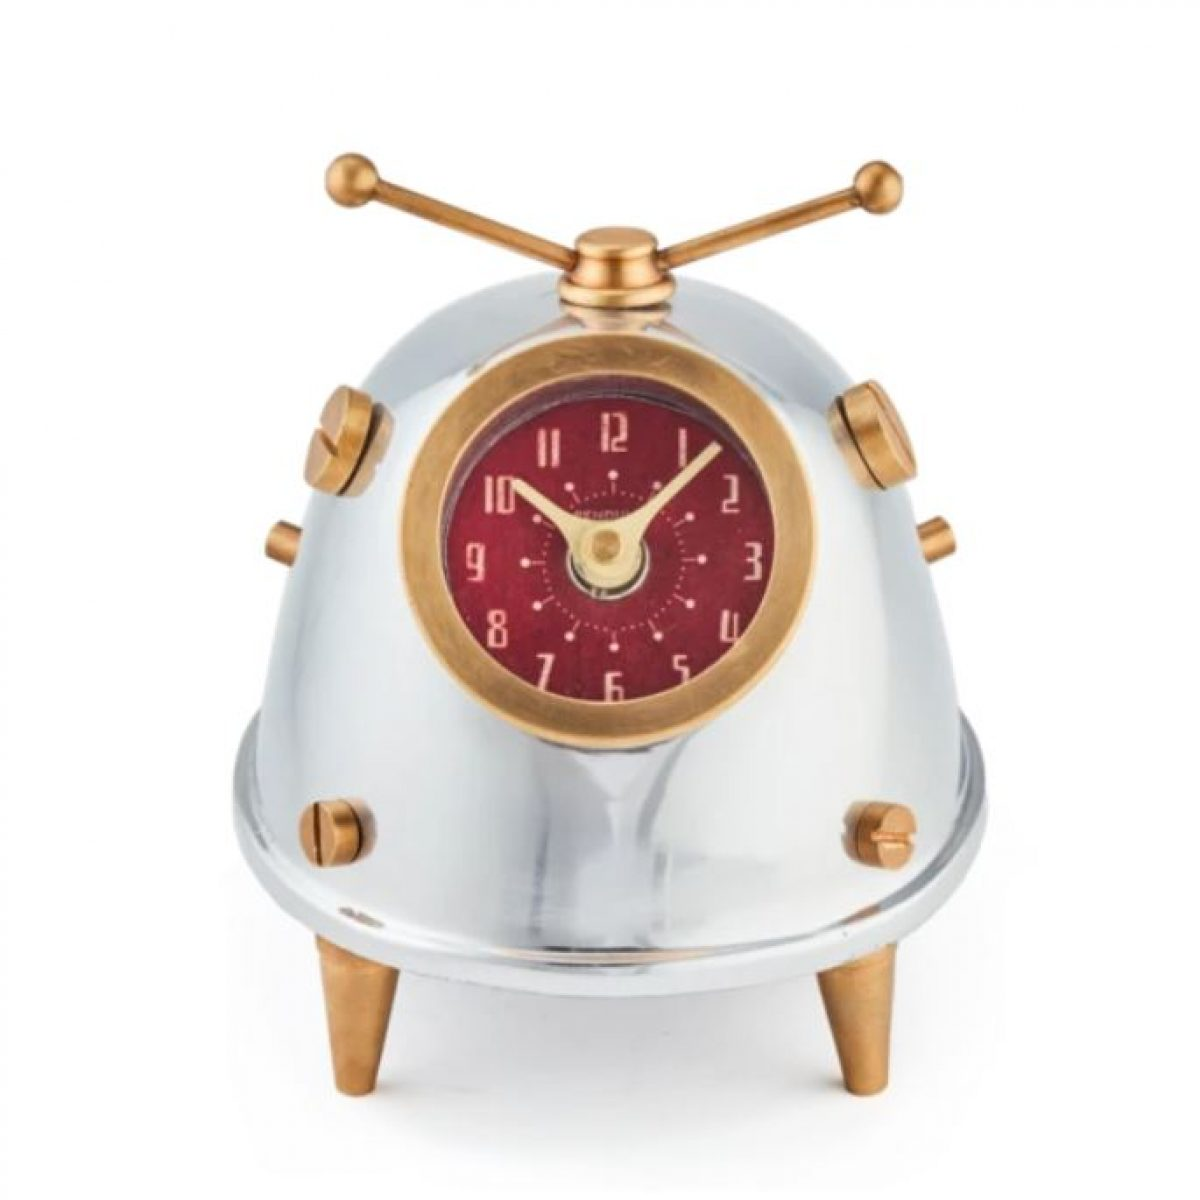 Lady Bug Space Age Desk Clock Modern Atomic Era Design The Kings Bay